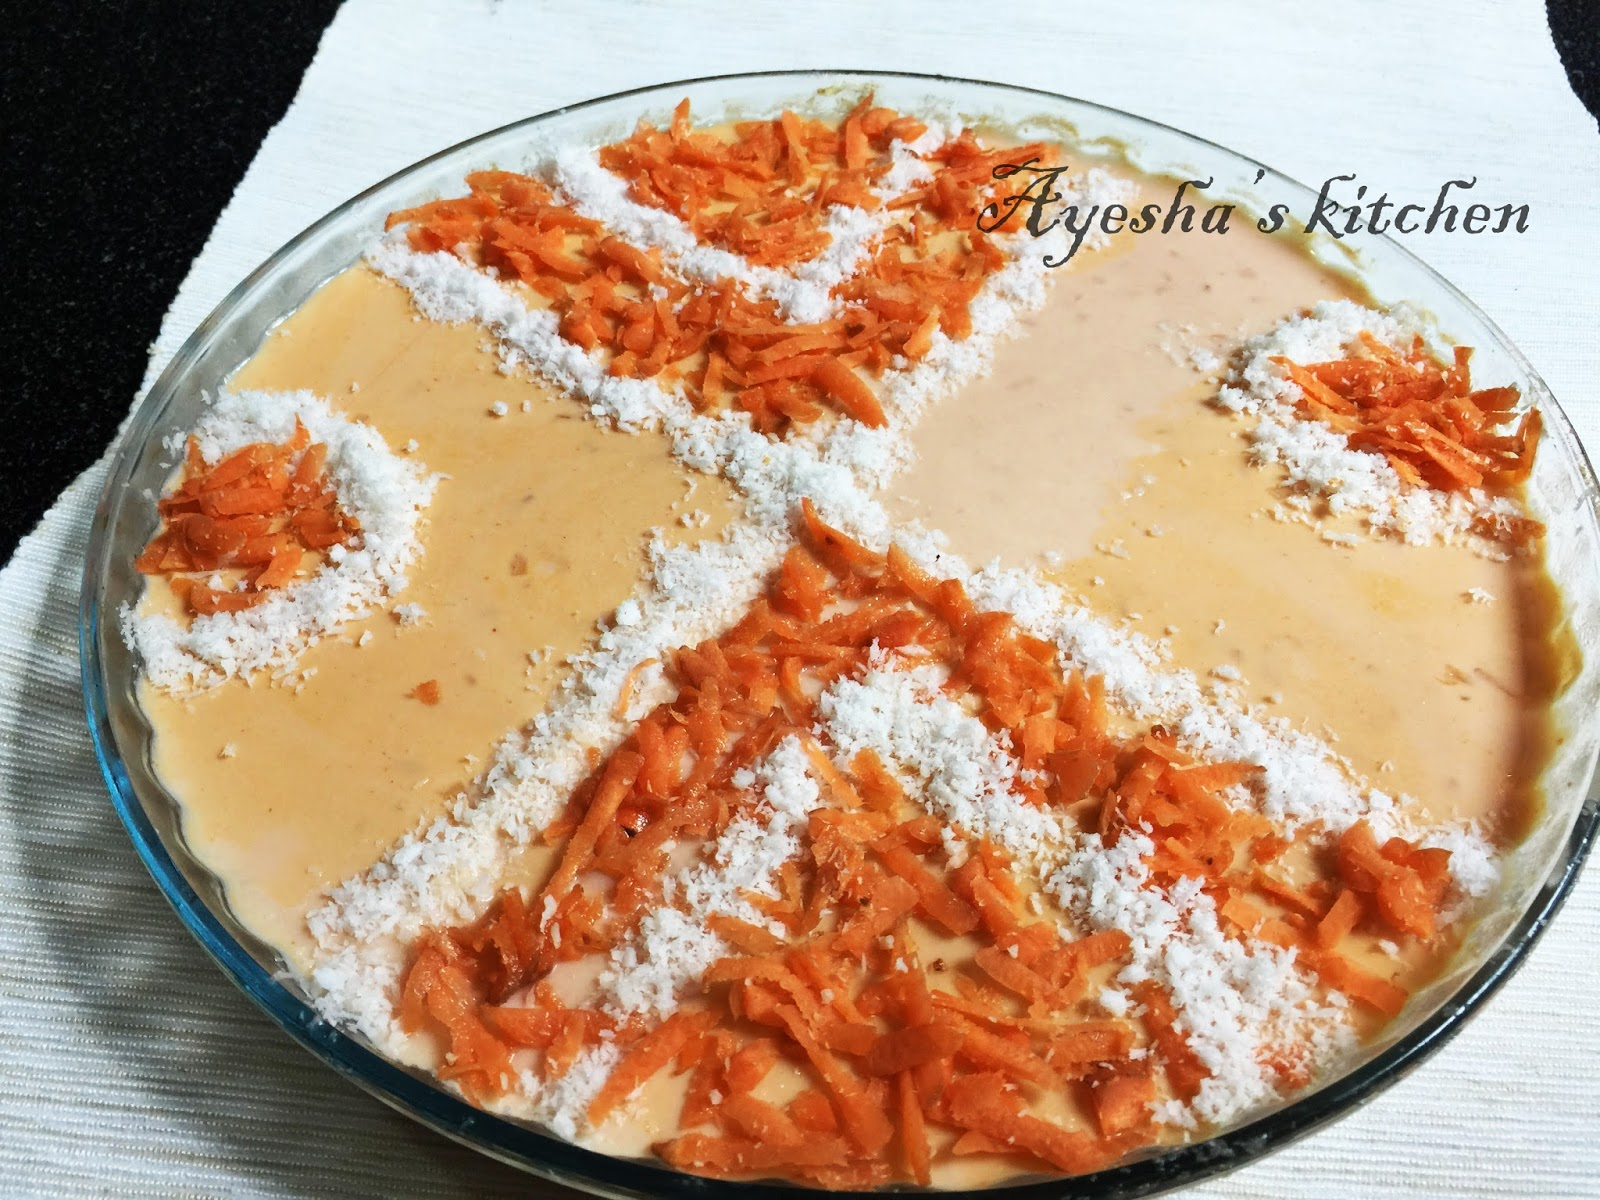 Chocolate Cake Recipe Kerala Style: Carrot Pudding